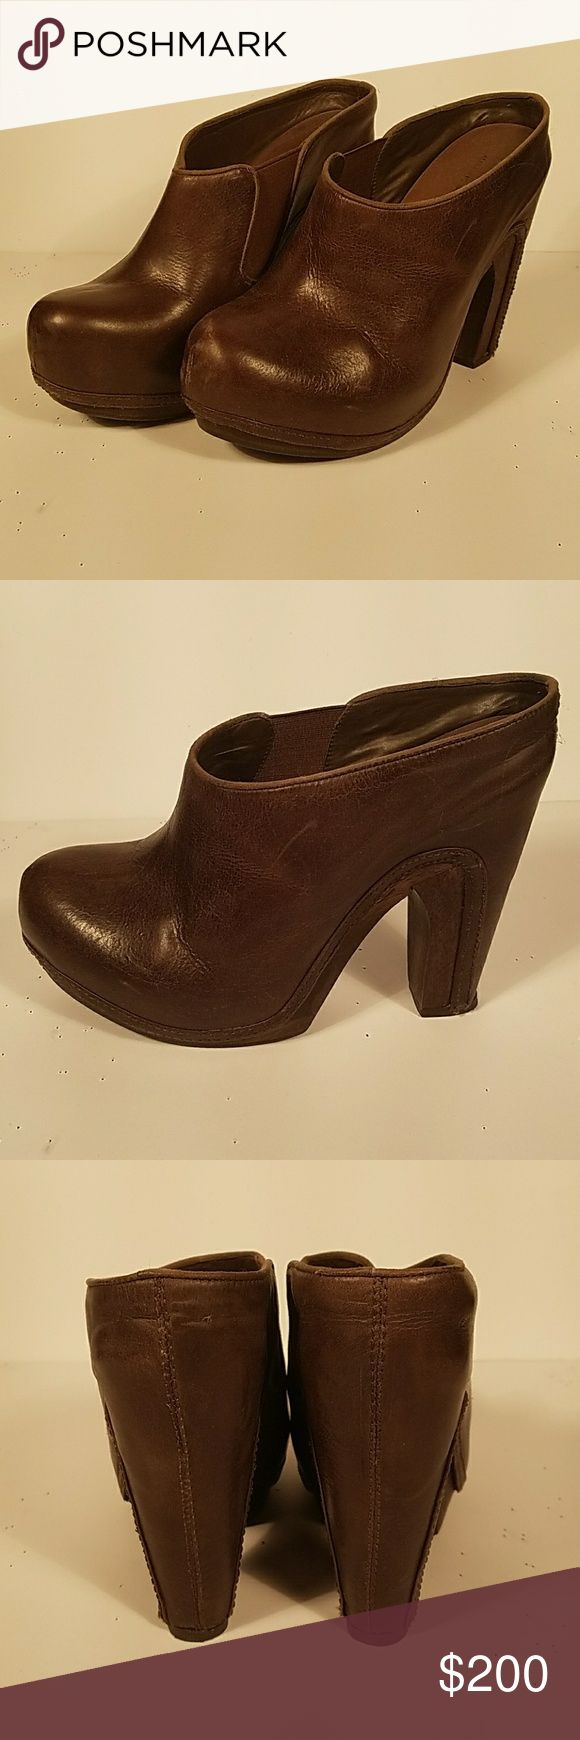 Allsaints Spitalfields Mule Heel Allsaints Mules in great condition. Worn only once! All Saints Shoes Mules & Clogs